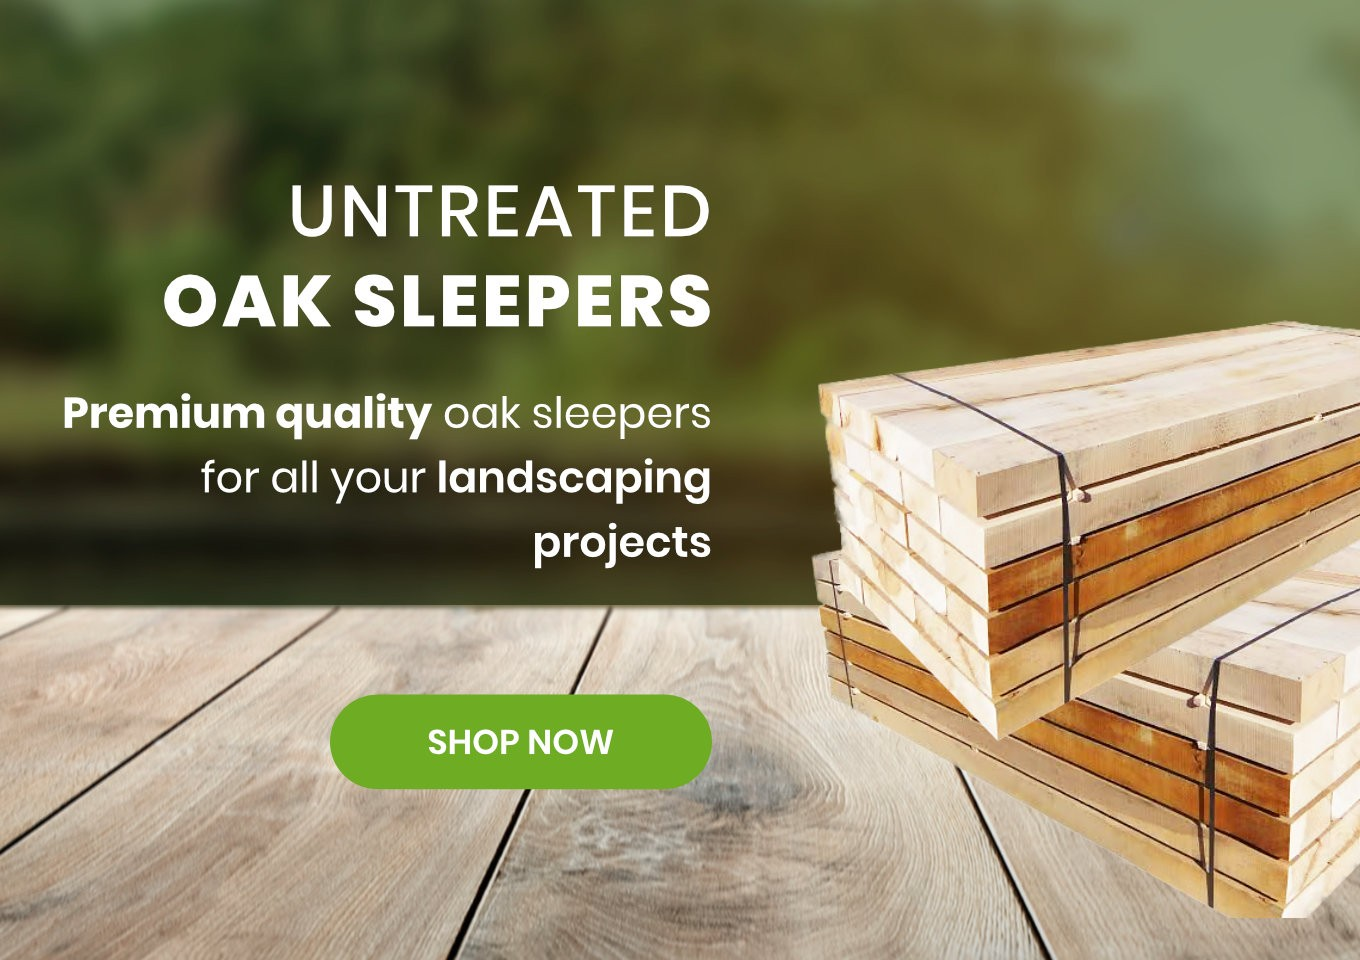 New Untreated Oak Sleepers For Sale - Luxury Wood Company